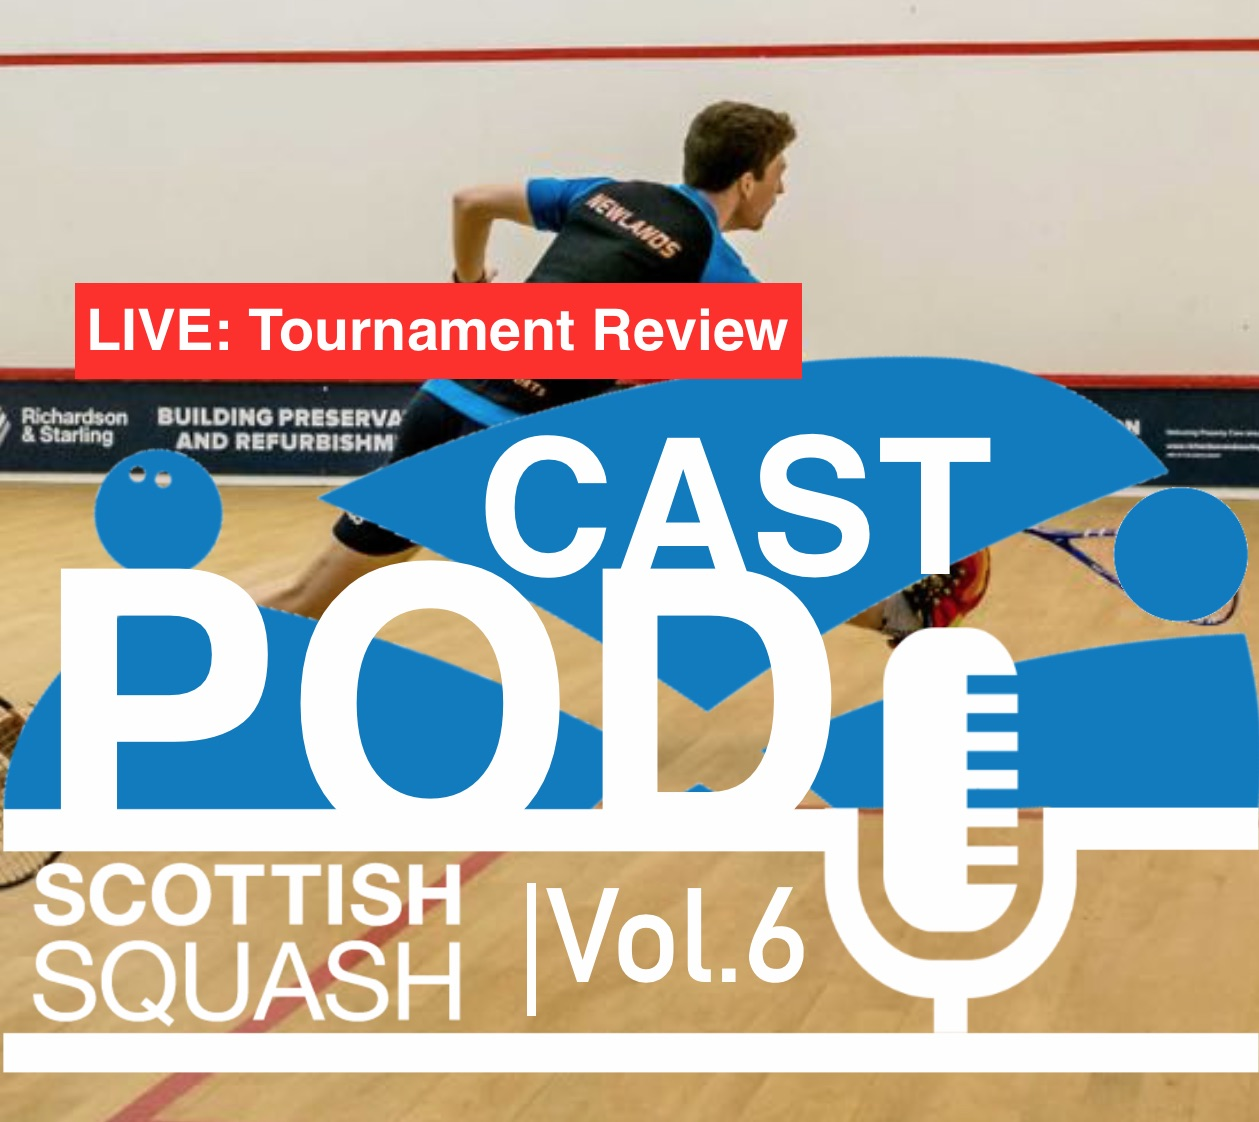 Scottish Squash Podcast - Vol.6 - LIVE: Getting the most out of competition